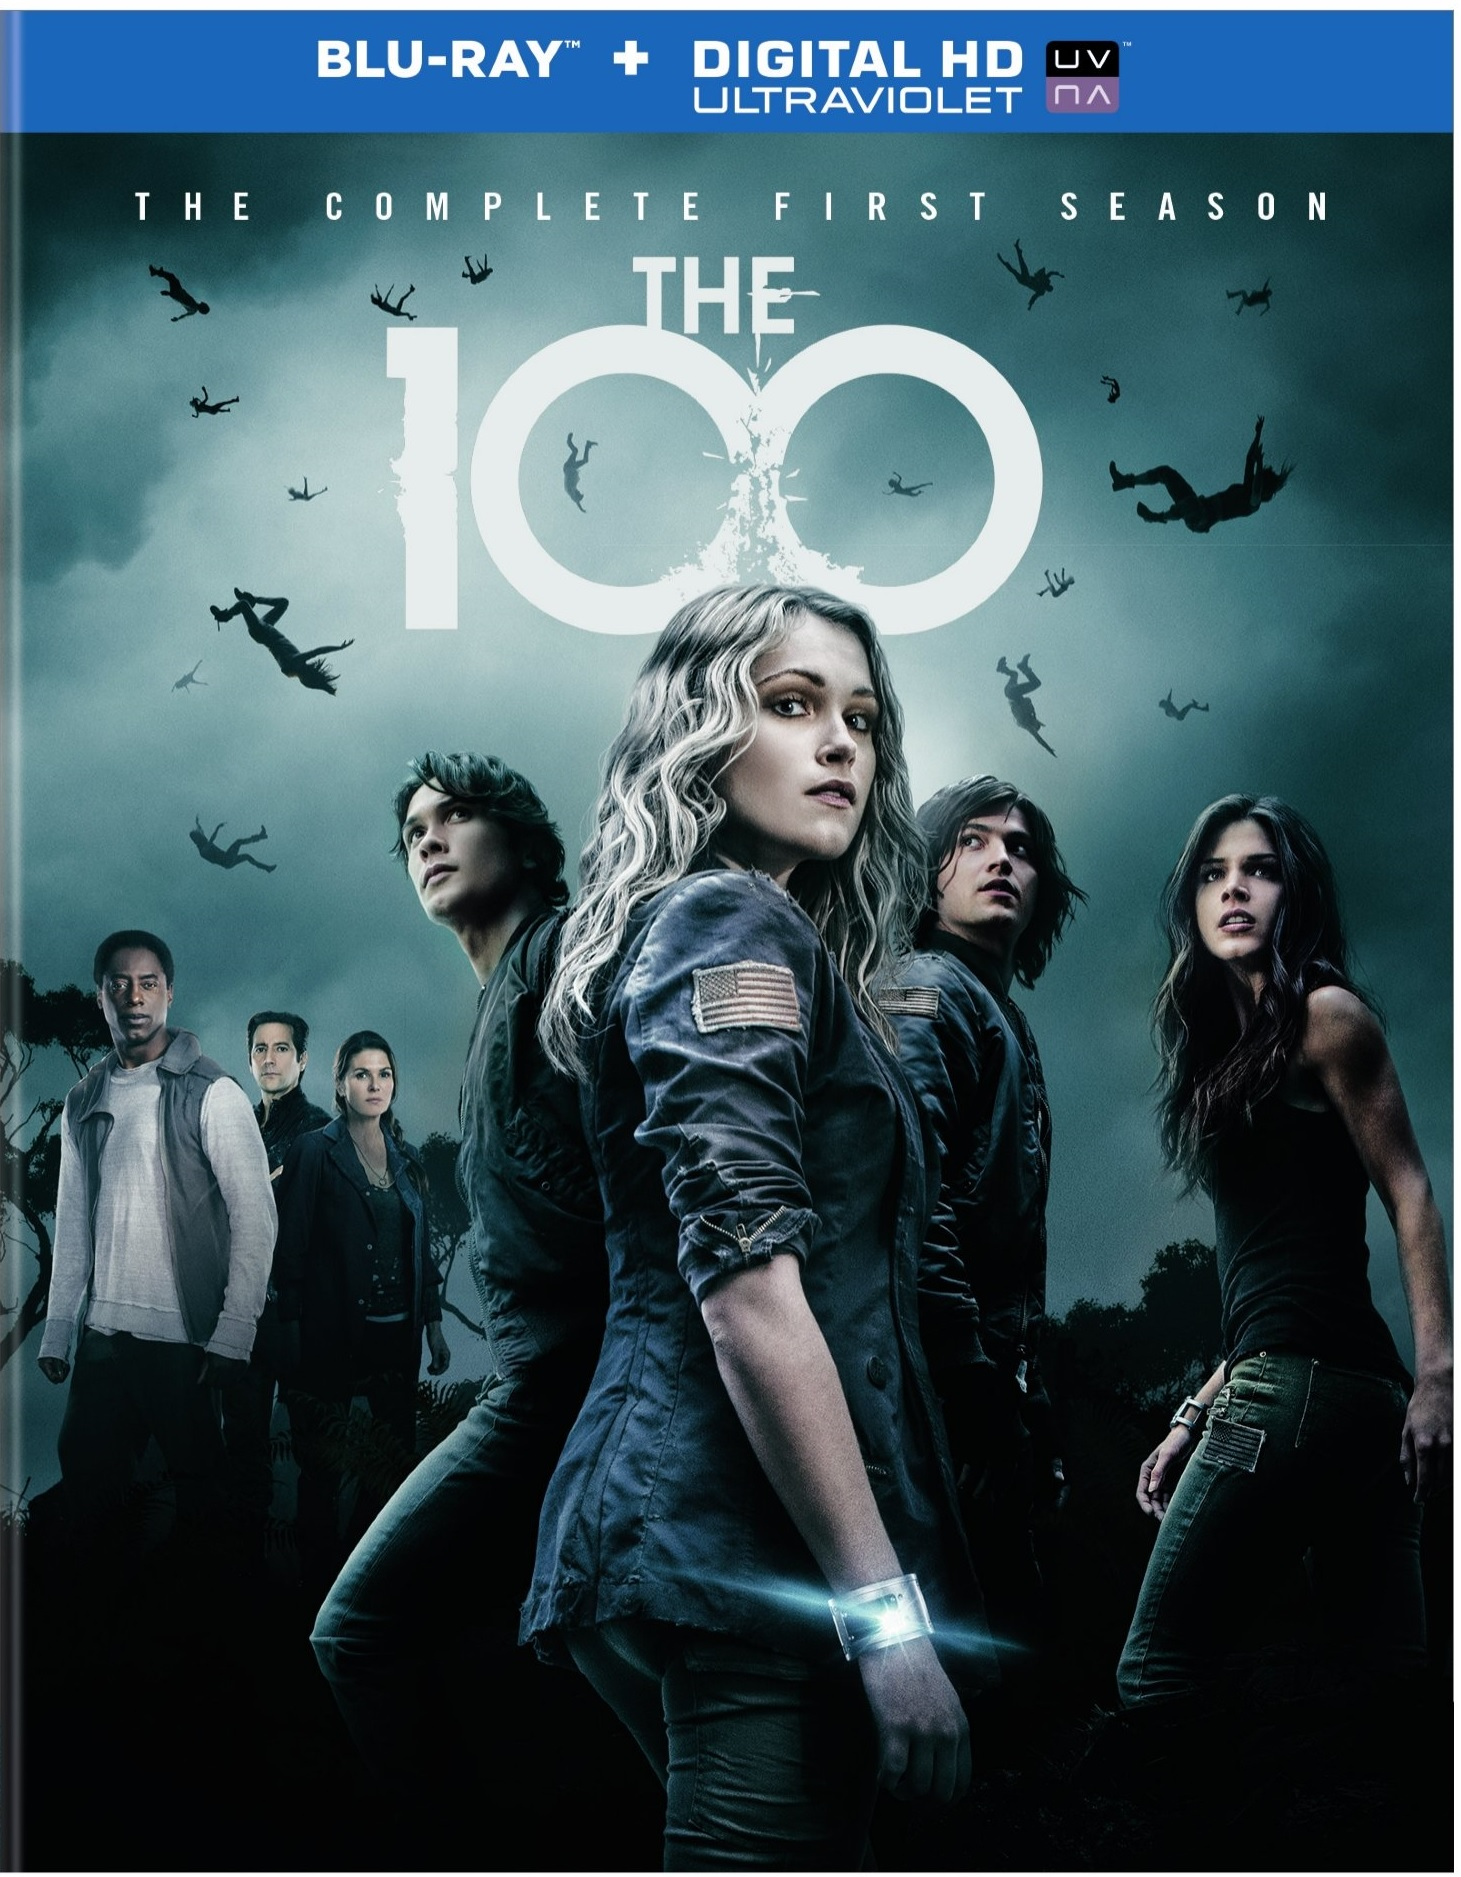 The 100 Season 1 Blu-ray Review